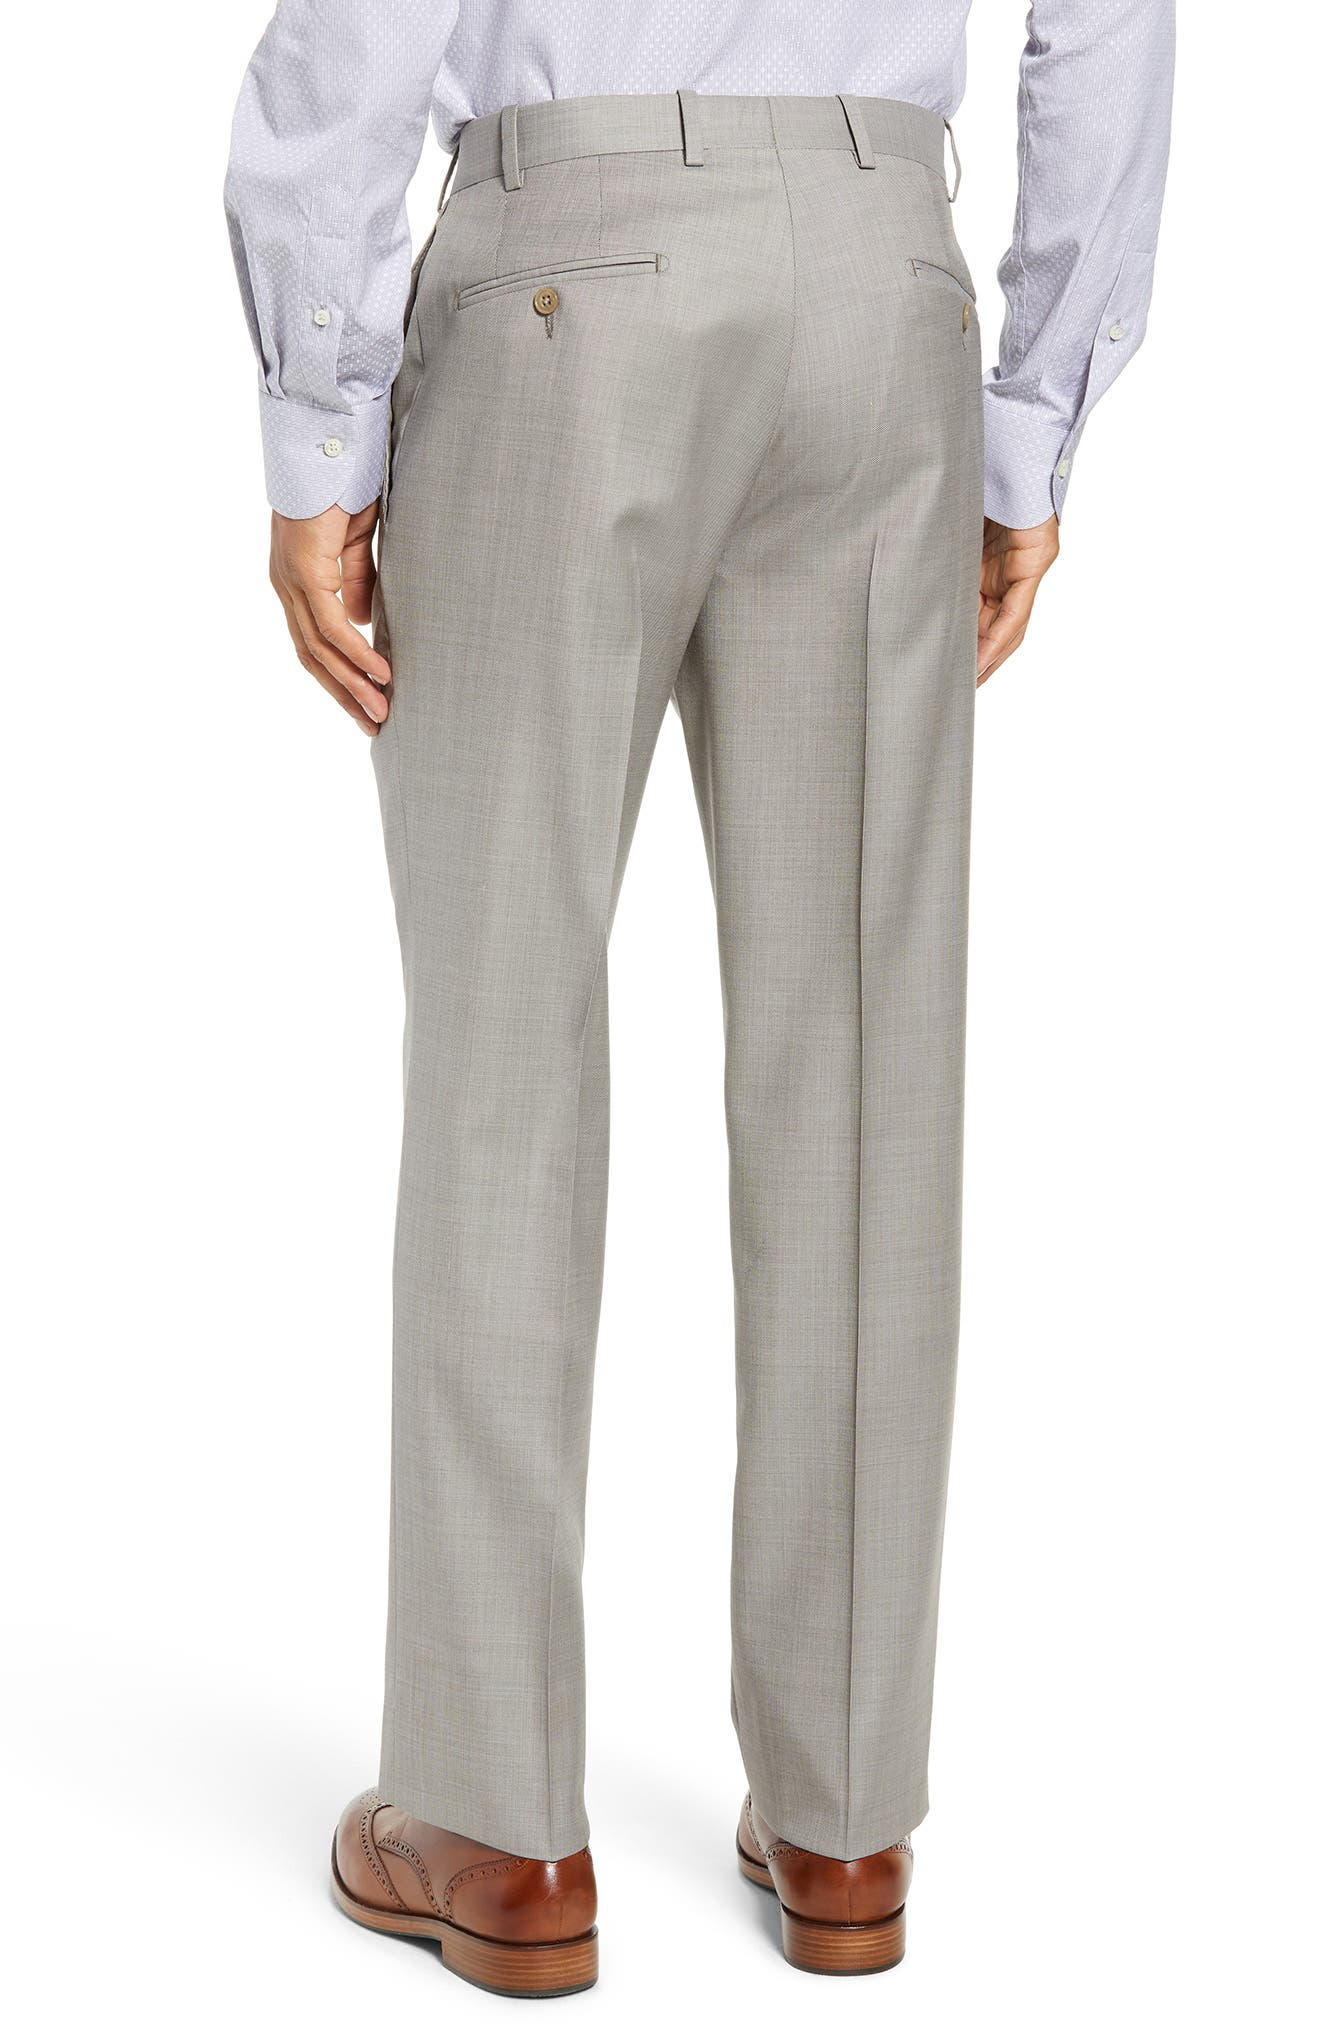 Torino Flat Front Solid Wool Trousers,                             Alternate thumbnail 6, color,